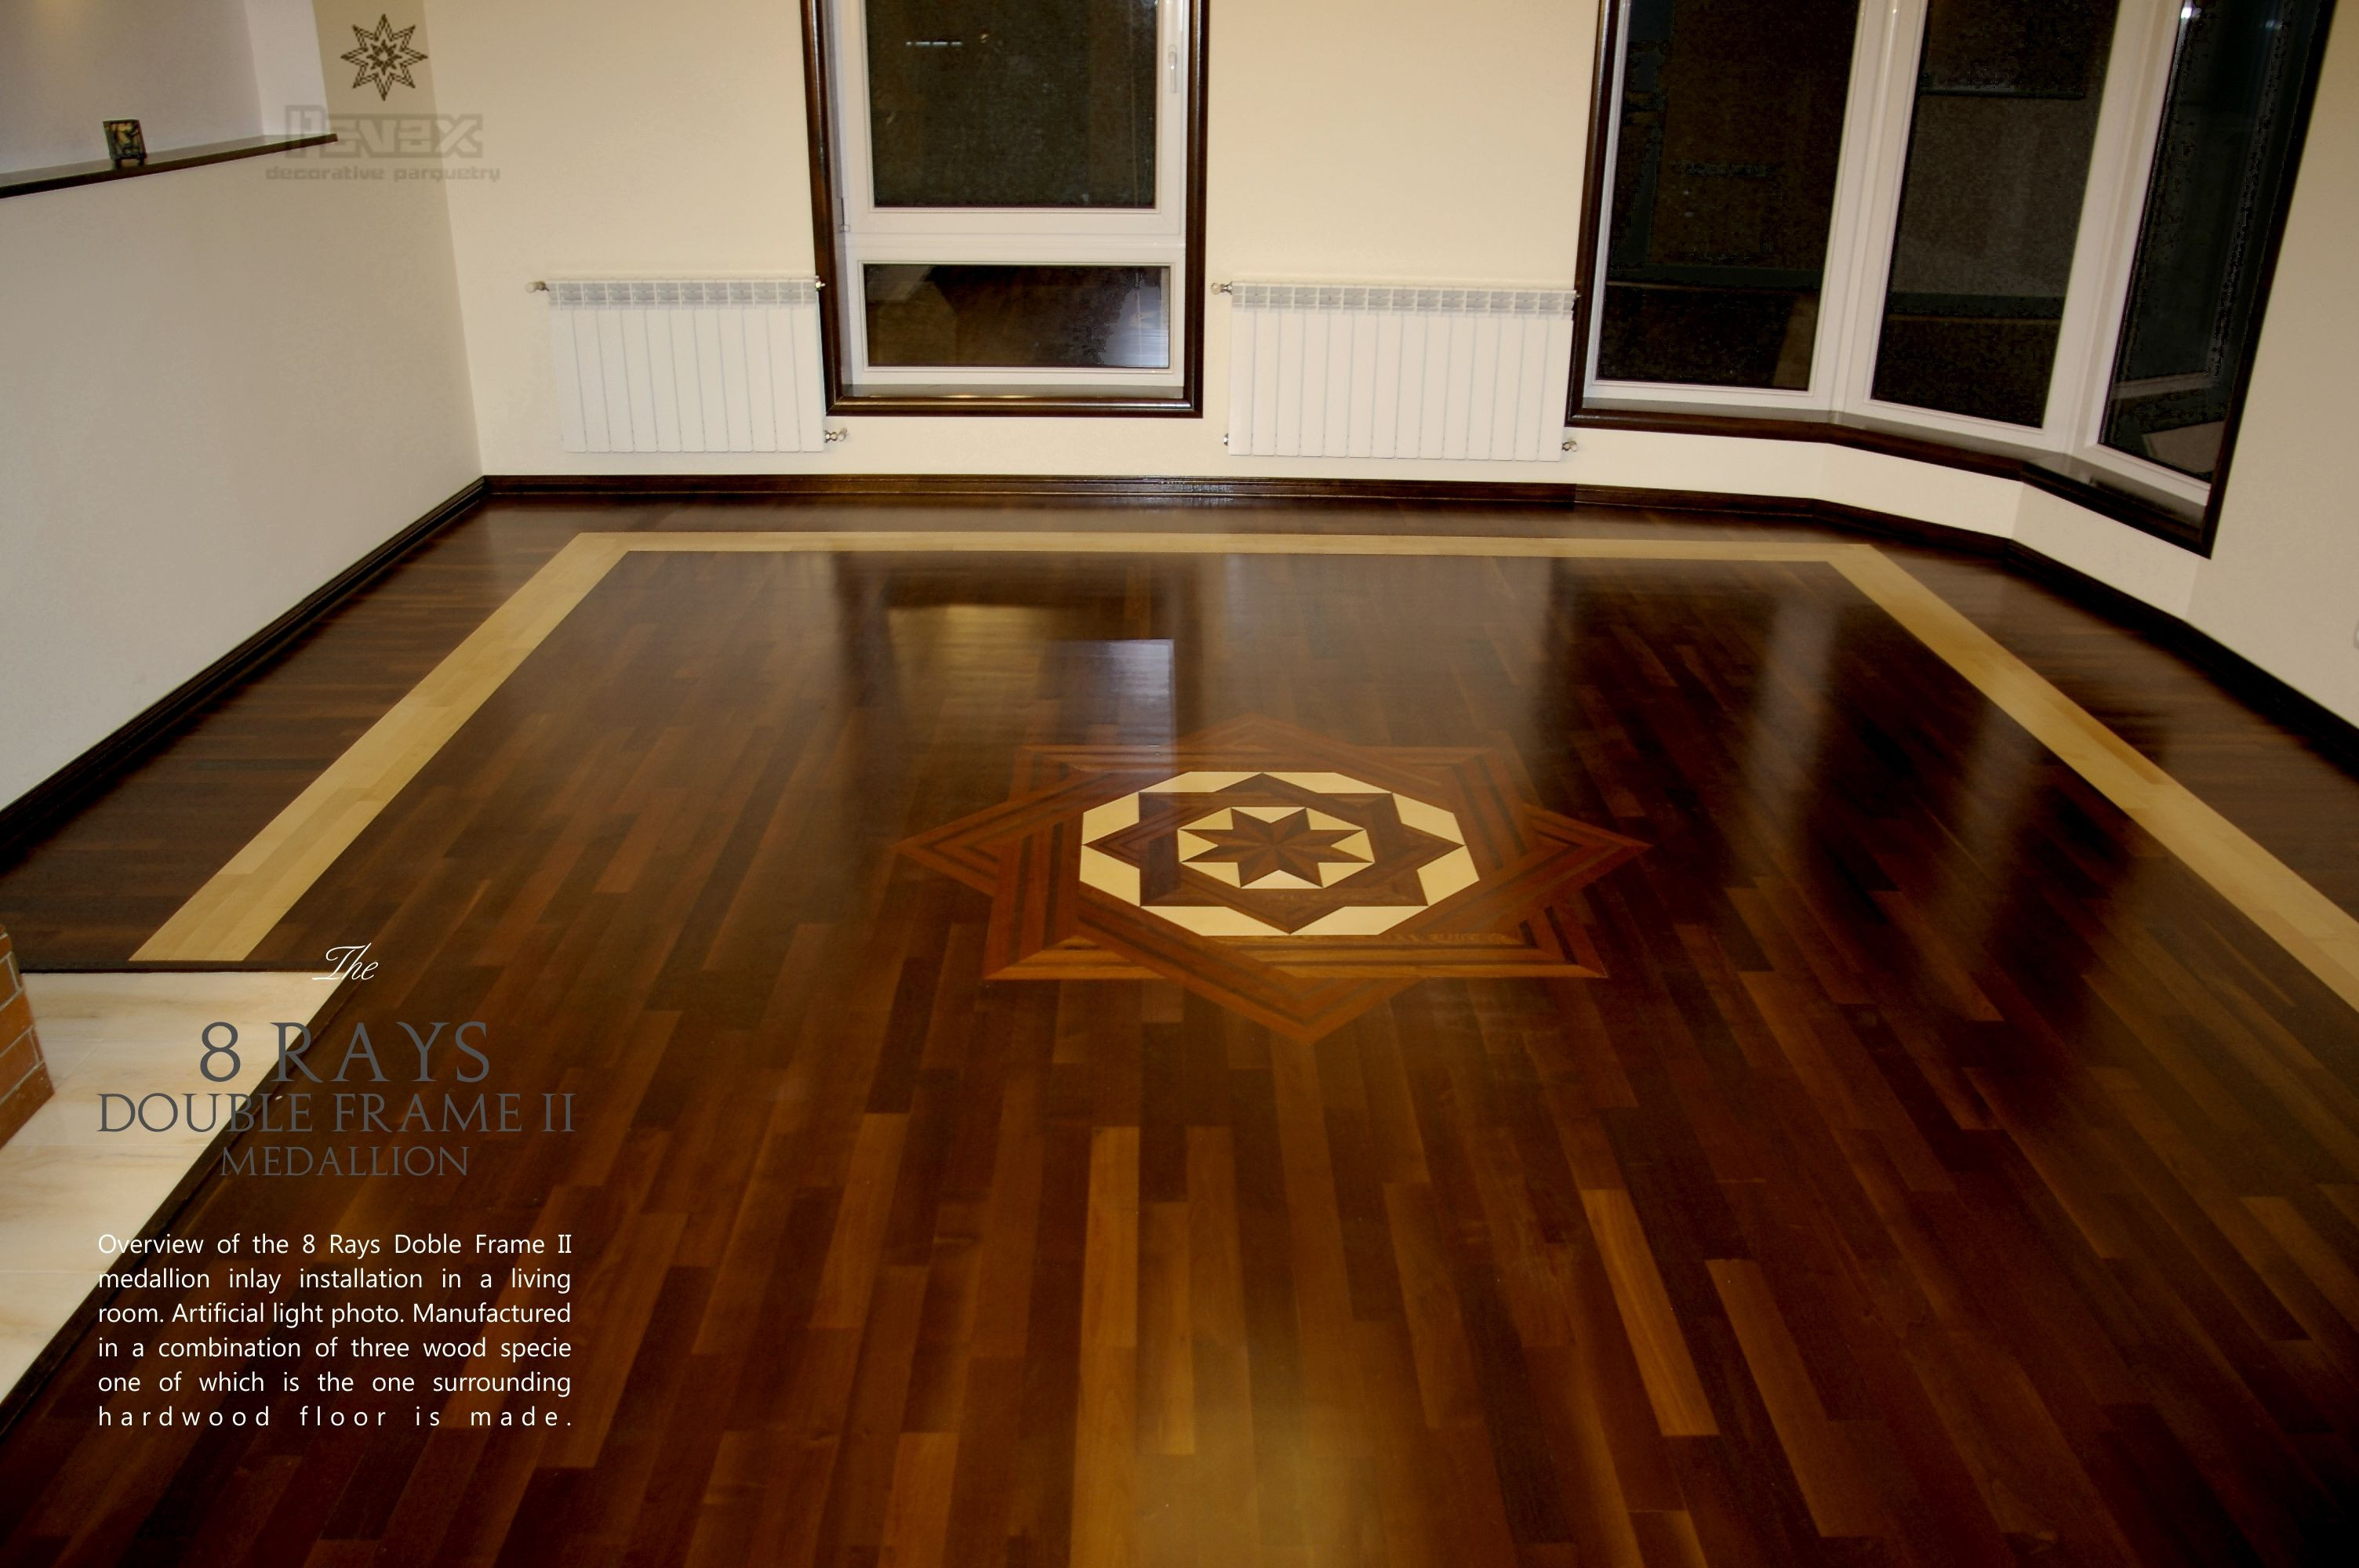 acacia hardwood flooring reviews of acacia wood flooring a third image of the same wood floor medallion throughout acacia wood flooring acacia bronze plank pinterest acacia wood flooring a third image of the same wood floor medallion inlay the 8 rays